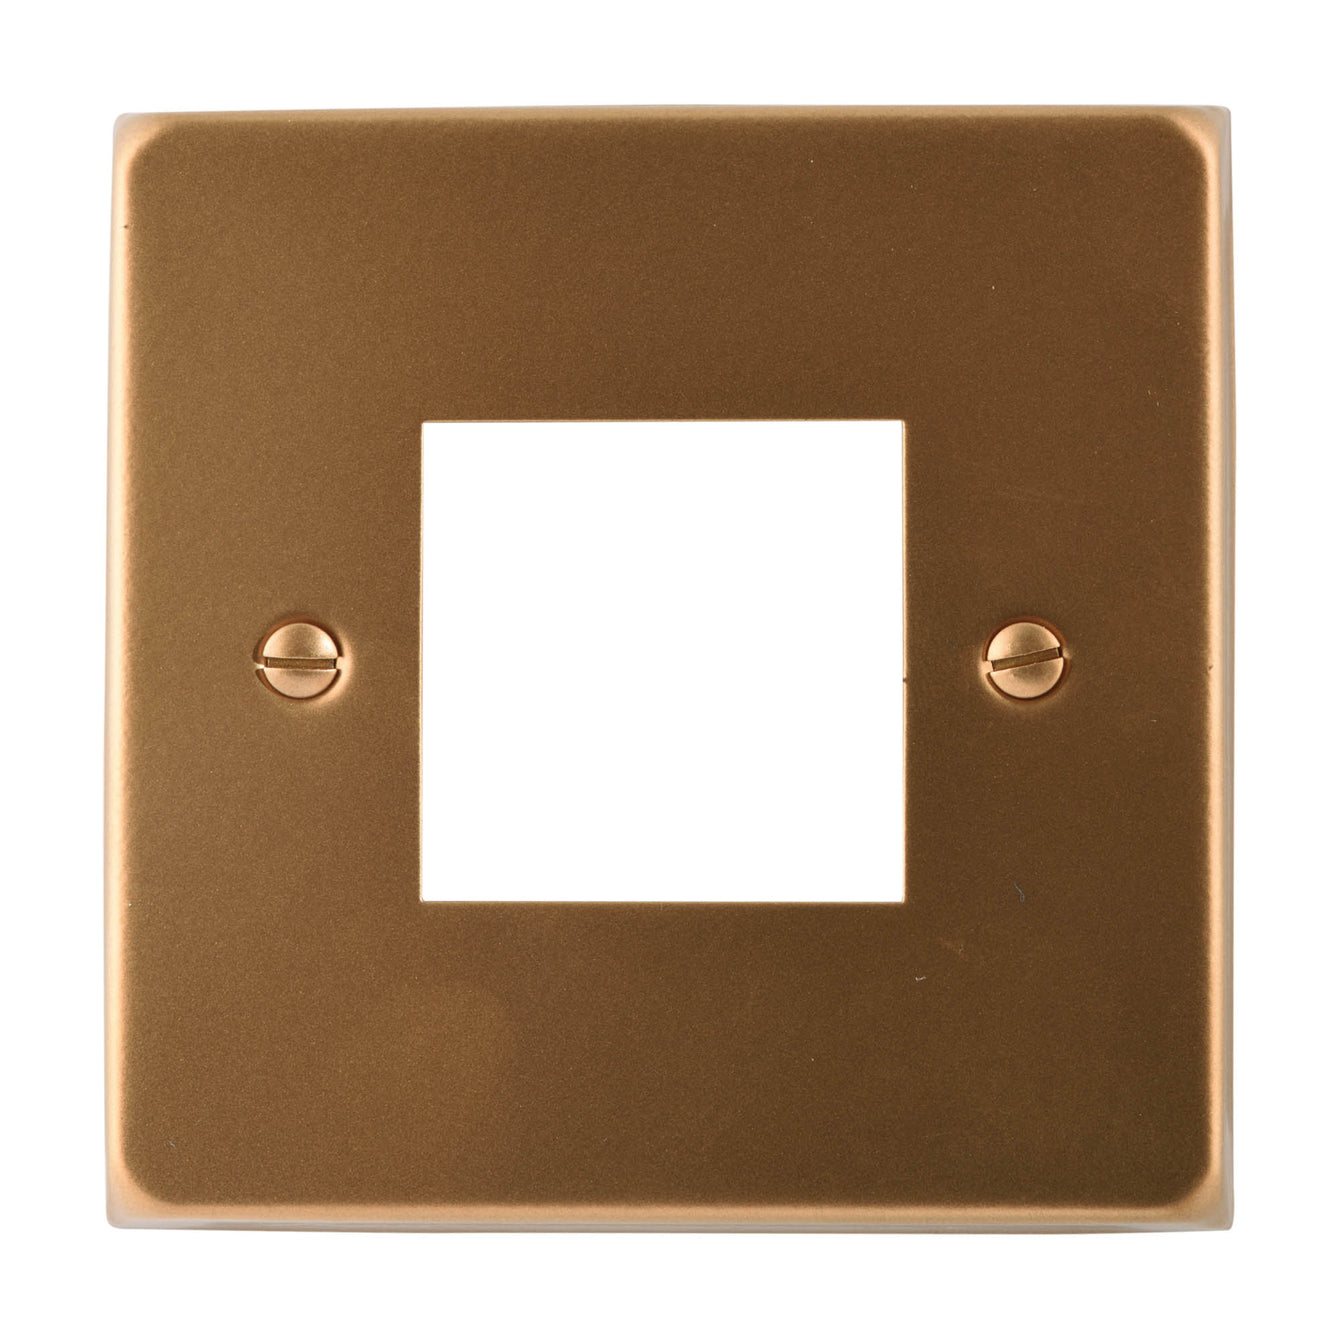 ElekTek Light Switch Conversion Cover Plate Double Victorian - Buy It Better Pink